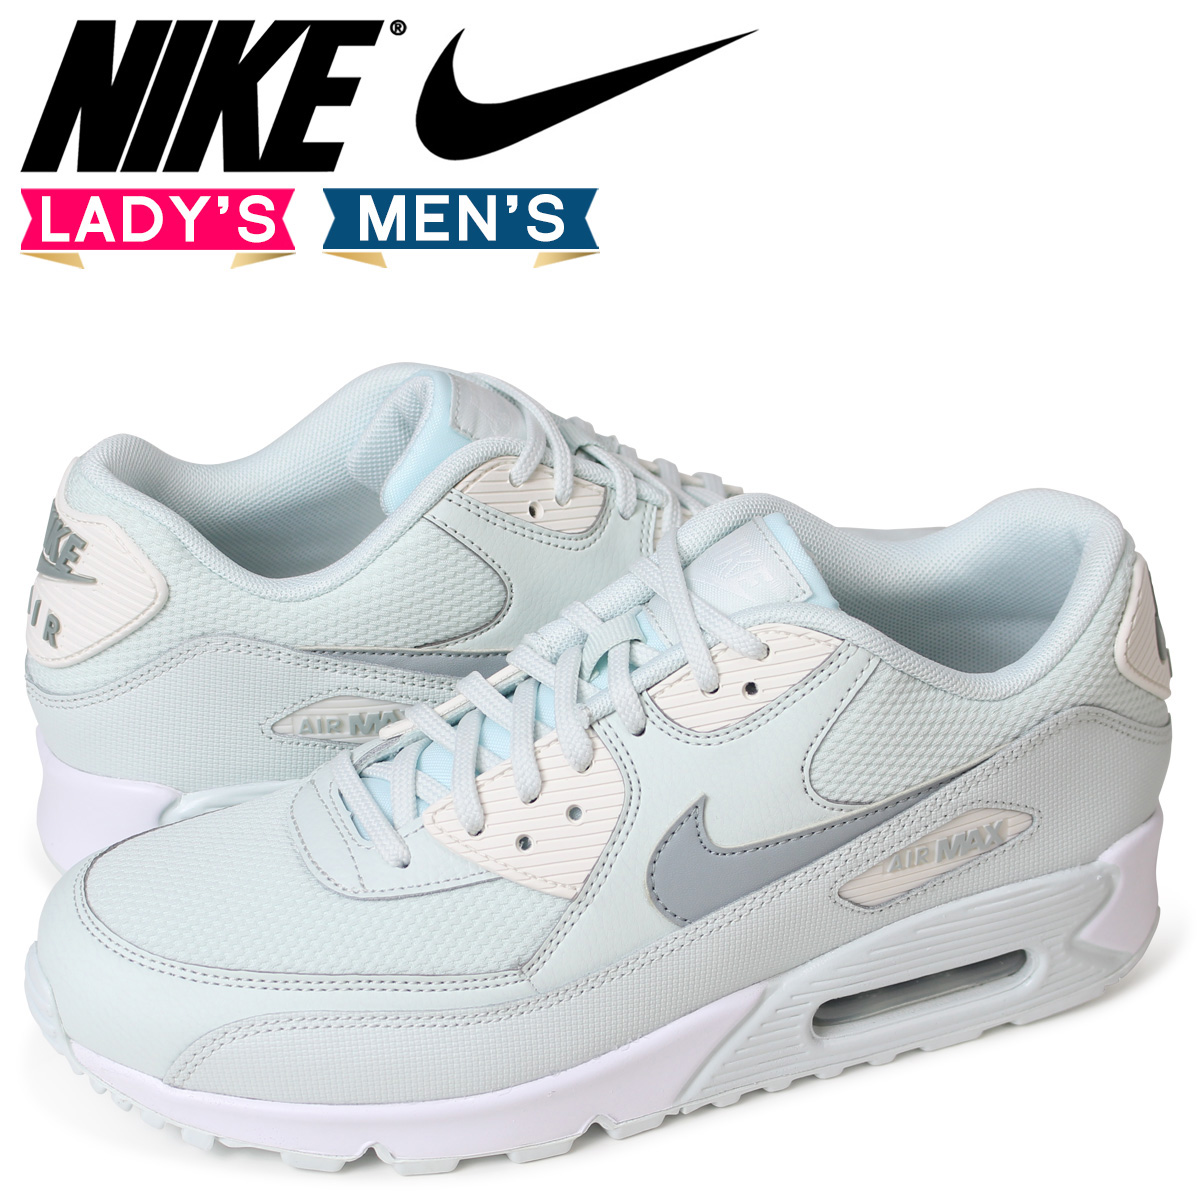 Nike NIKE Air Max 90 lady's men's sneakers WMNS AIR MAX 90 325,213 053 light blue